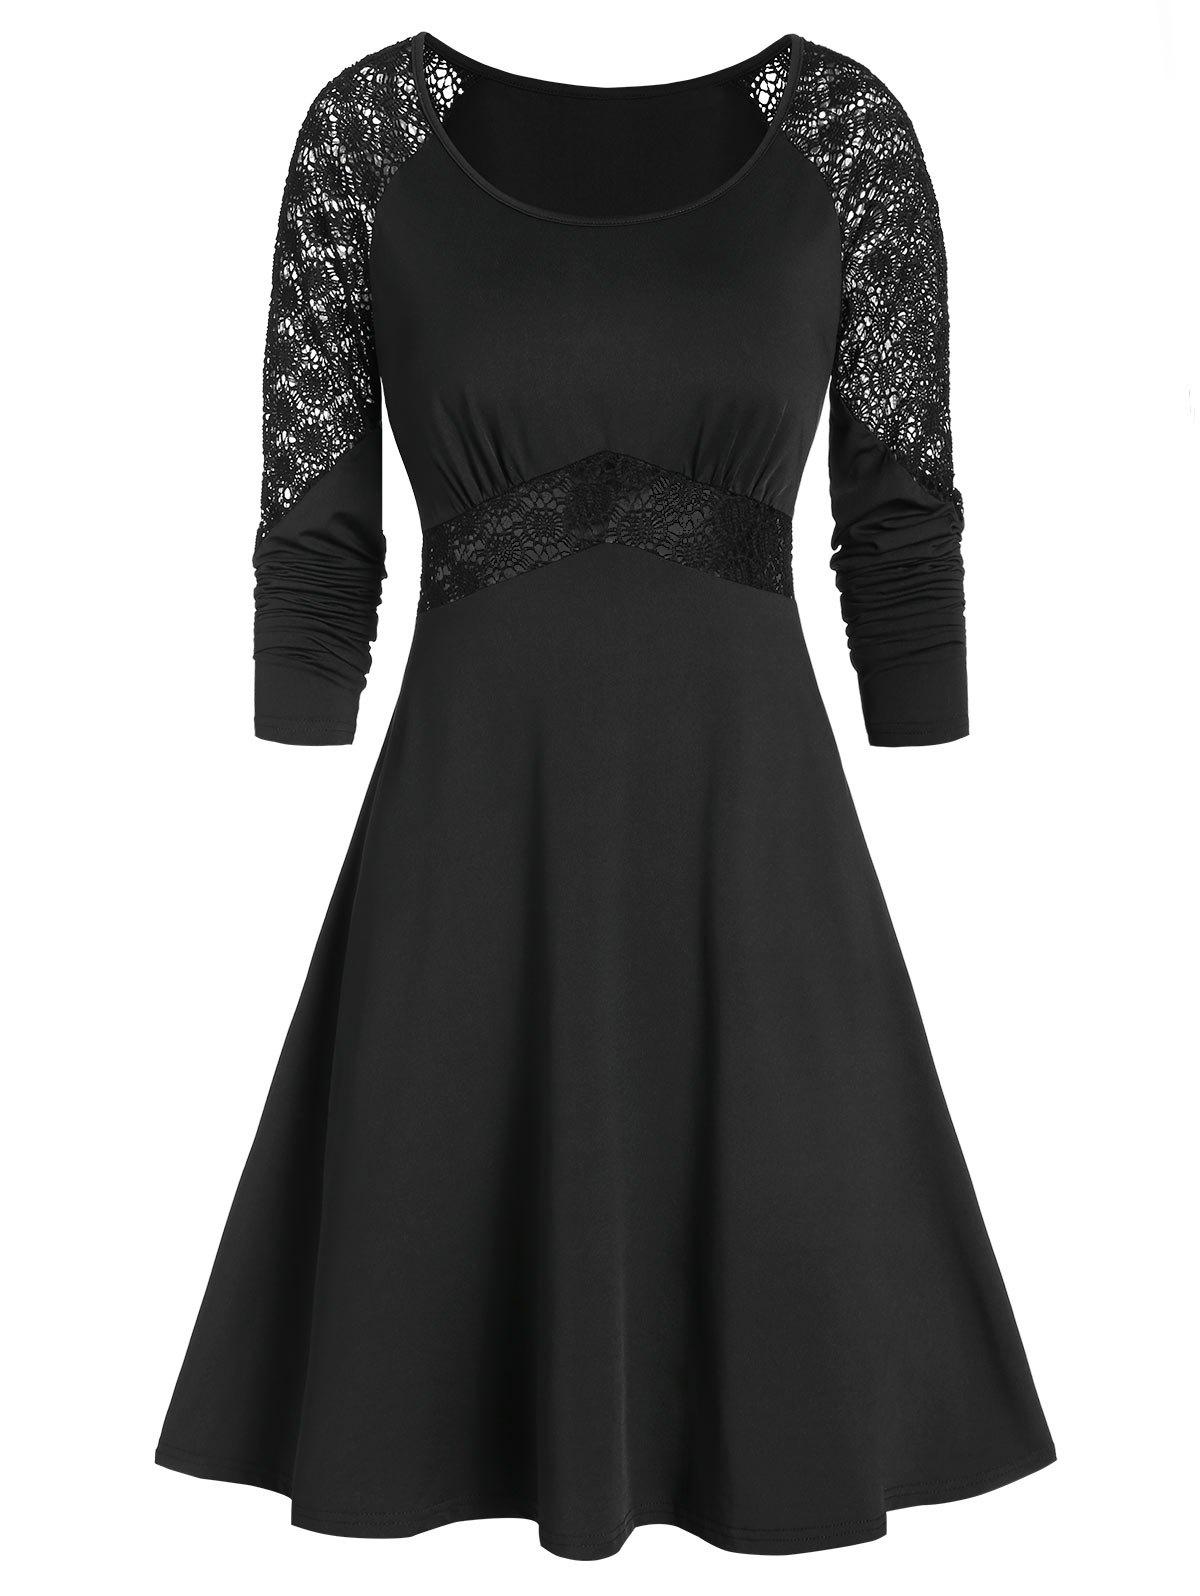 New Long Sleeve Applique Fit And Flare Dress